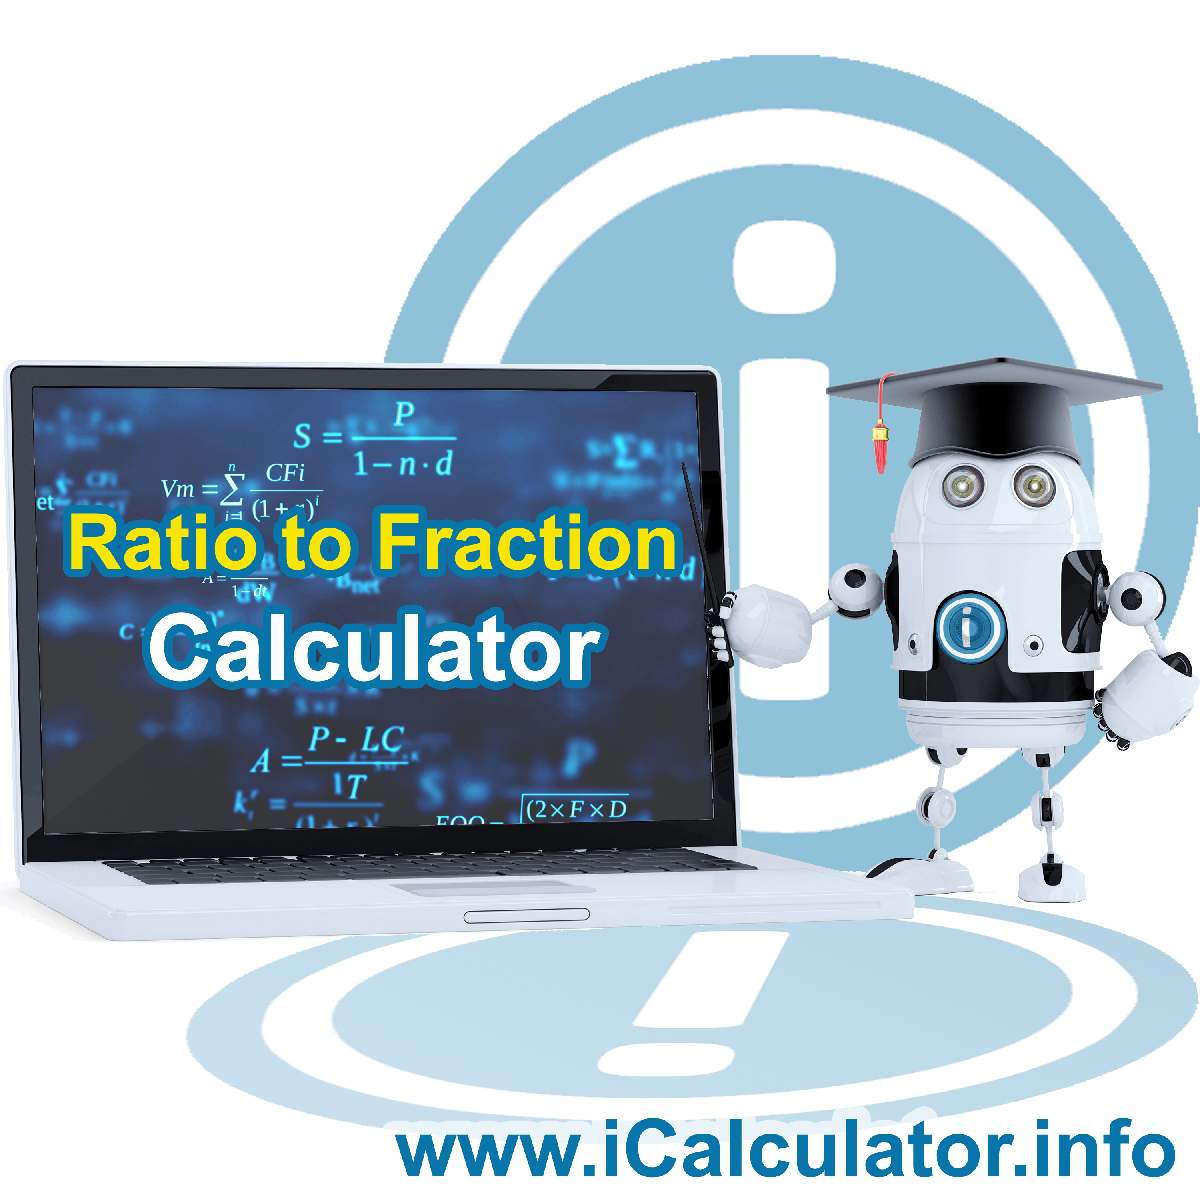 Ratio to Fraction Calculator: This image shows Ratio to Fraction Formula with associated calculations used by theRatio to Fraction Calculator